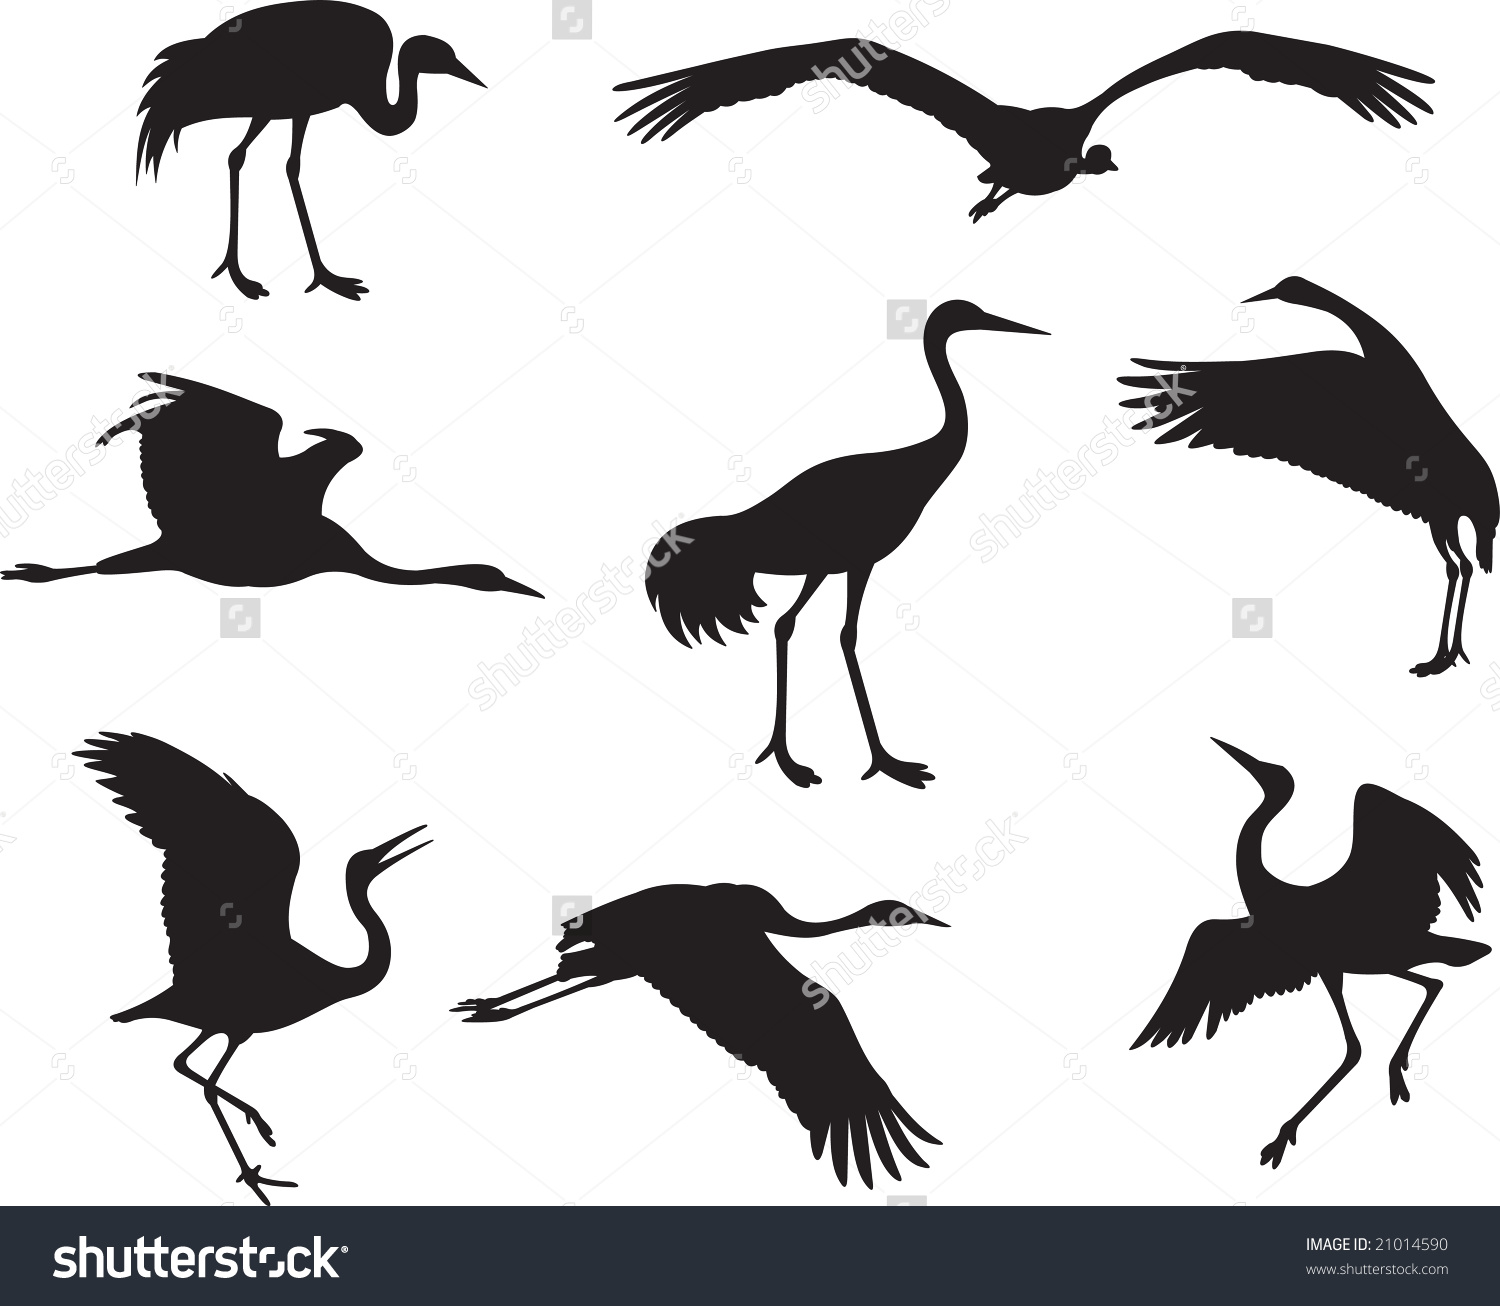 Japanese Crane clipart #18, Download drawings